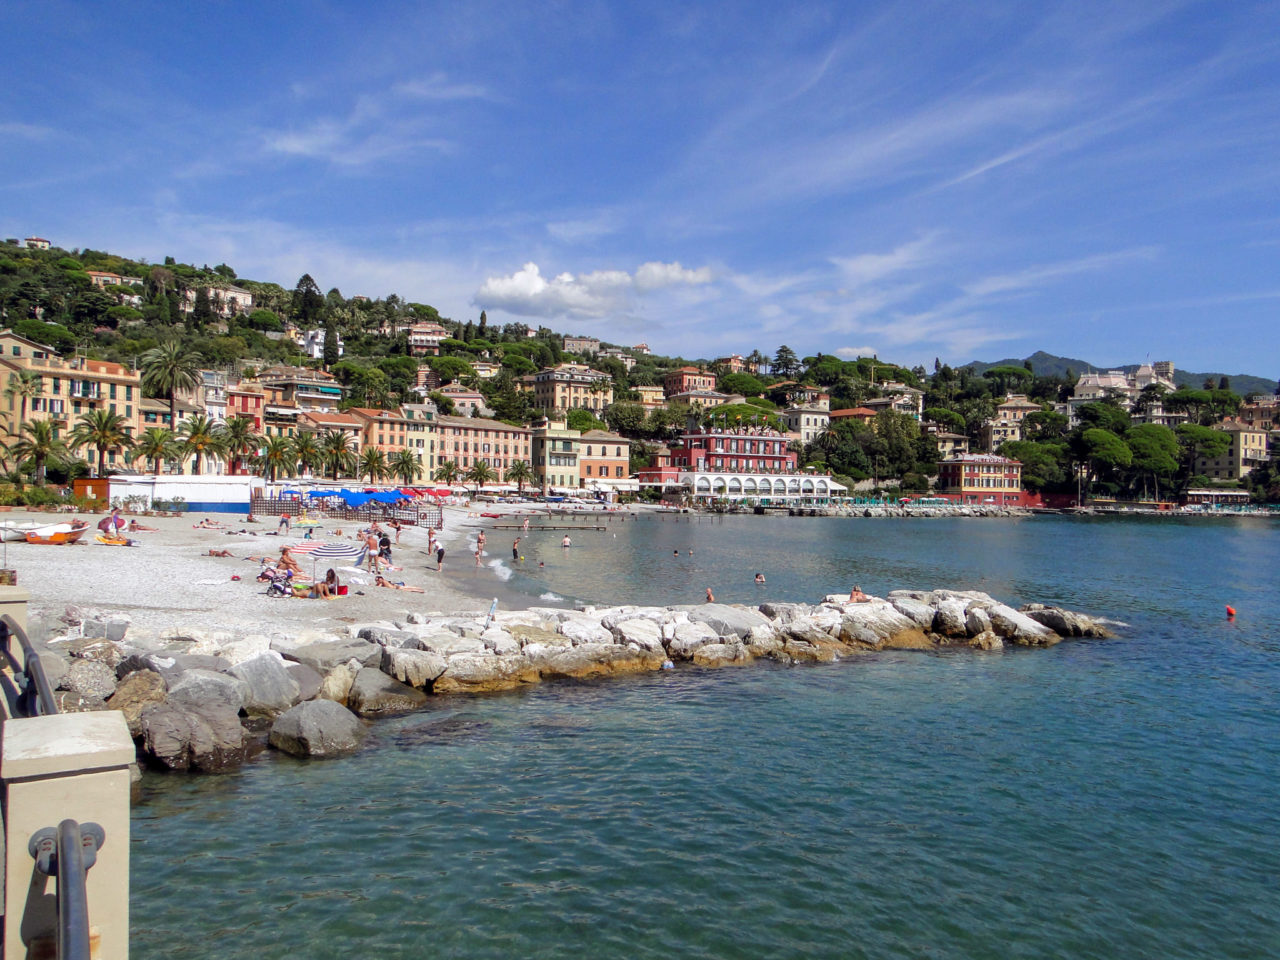 Санта-Маргерита-Лигуре (Santa Margherita Ligure)